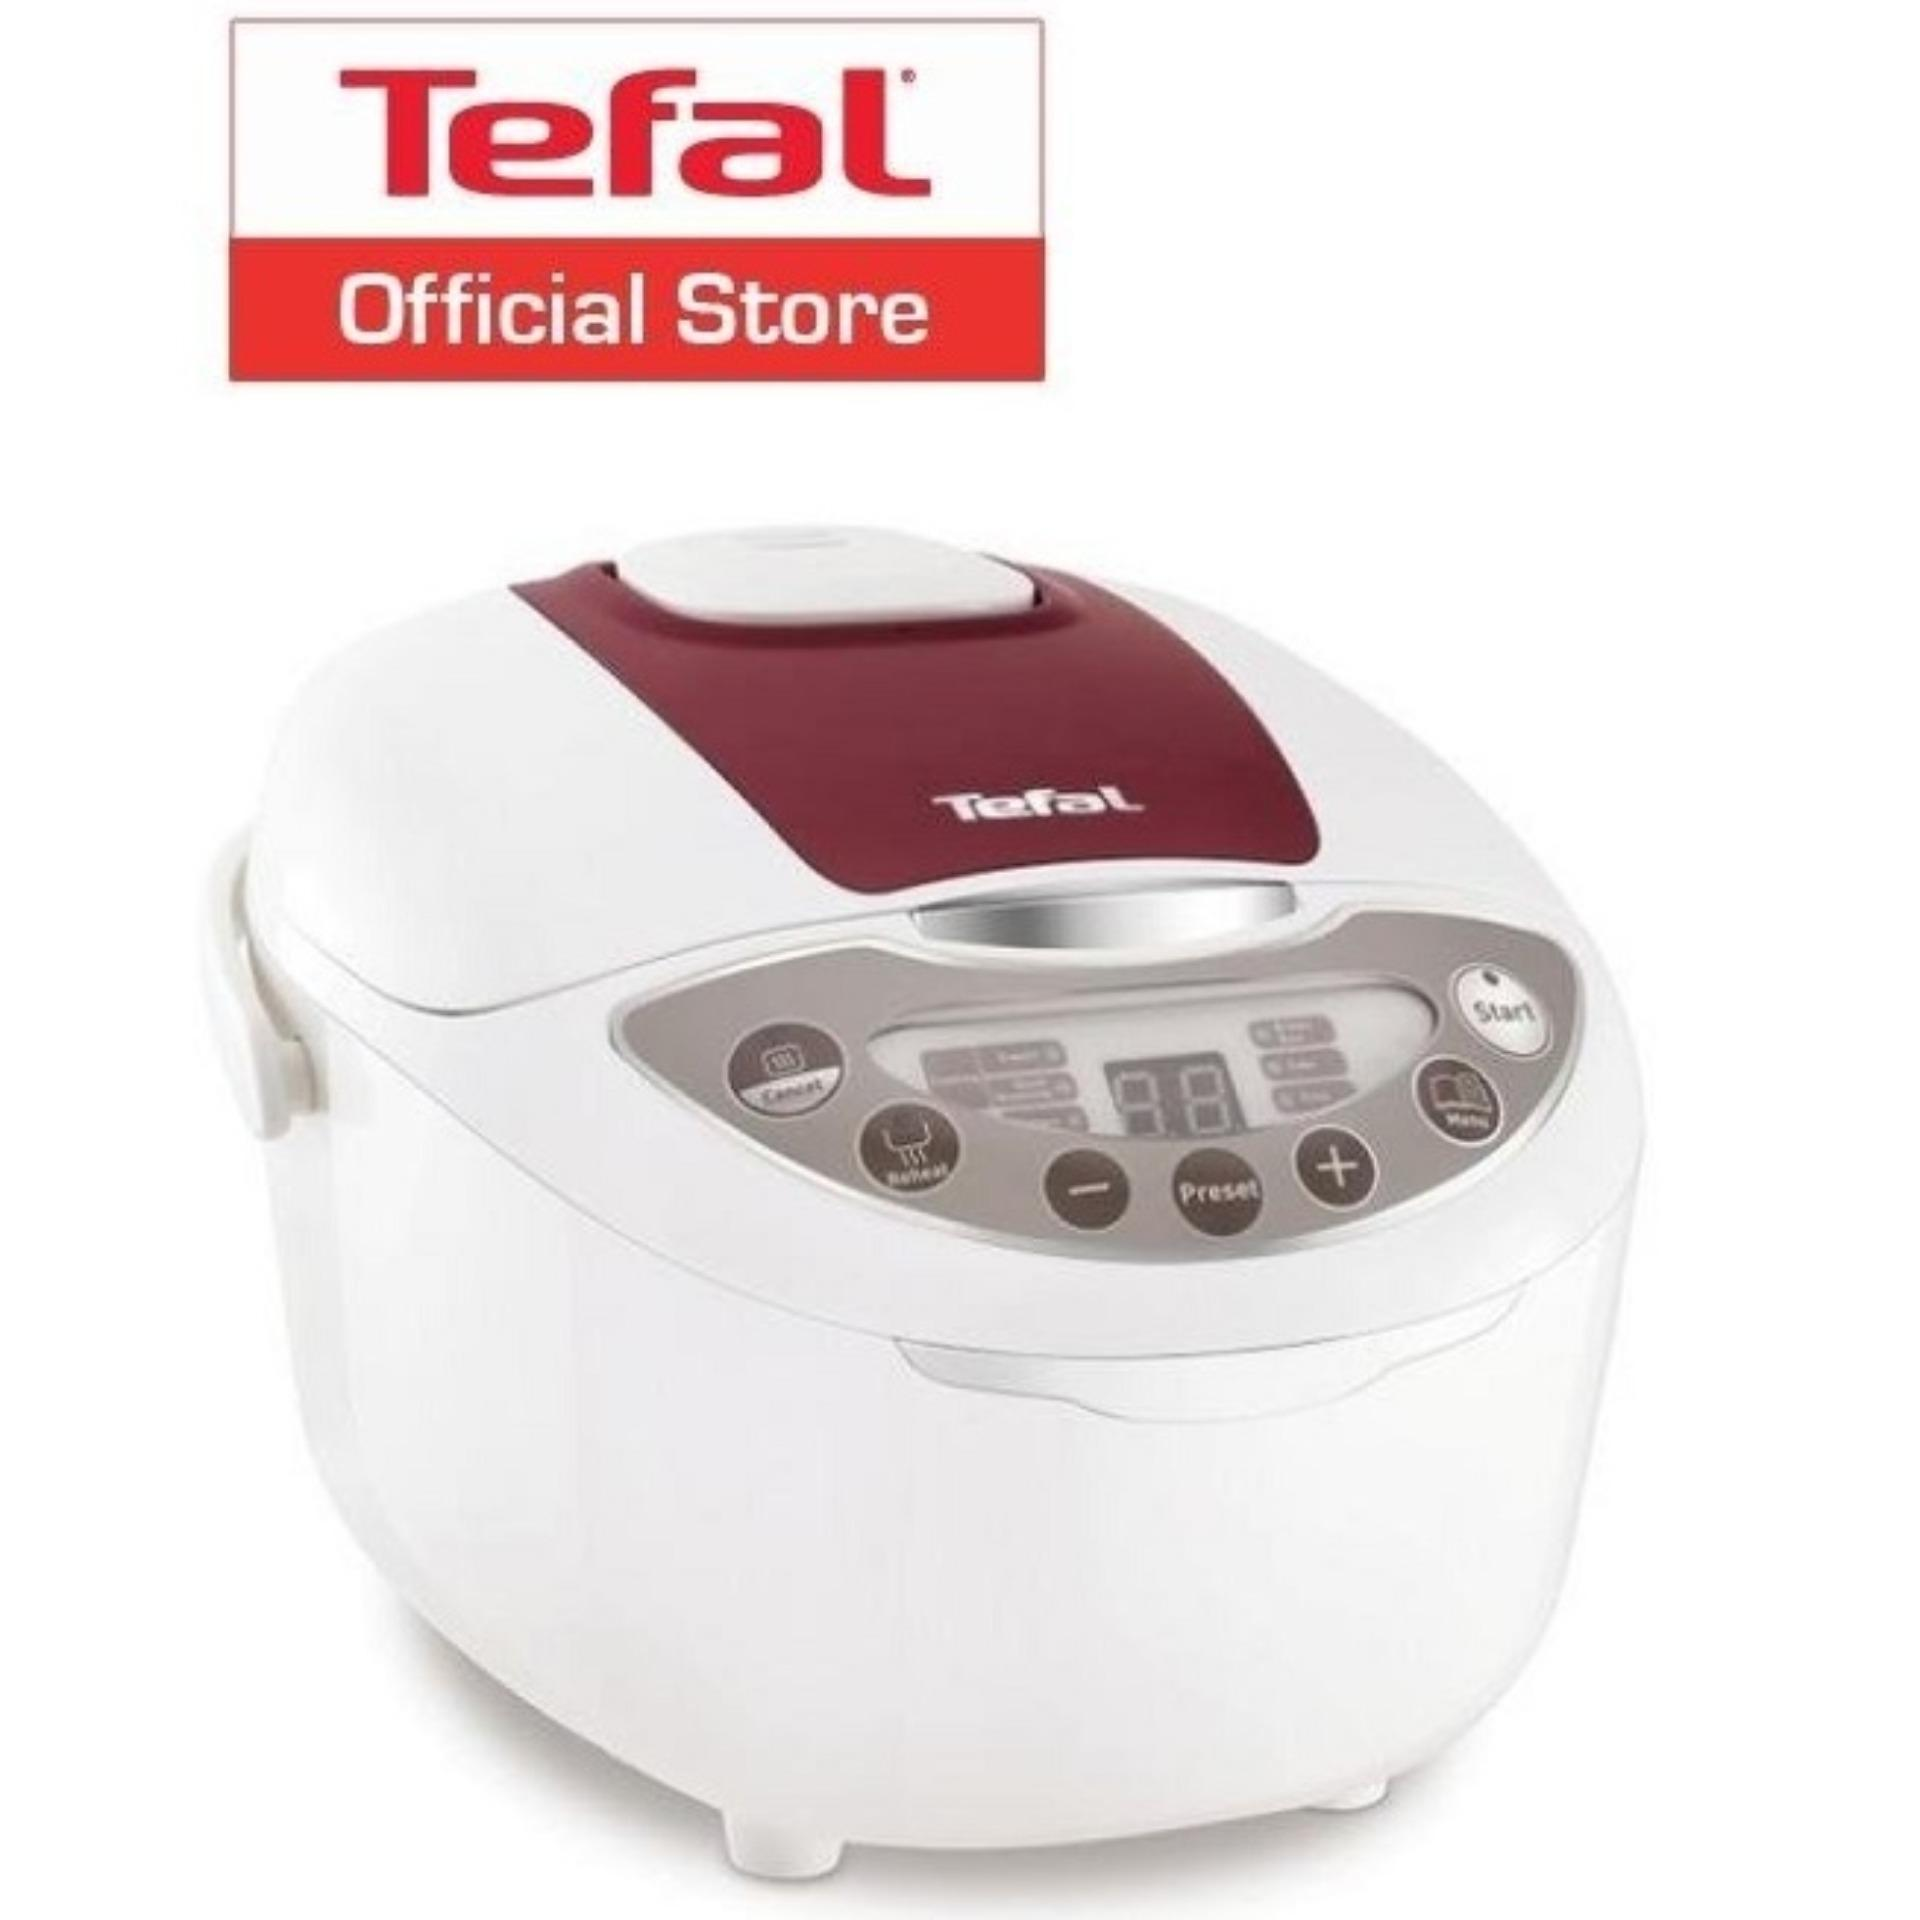 Where Can You Buy Tefal 6 Program Fuzzy Logic Rice Cooker 1 8L Rk7035